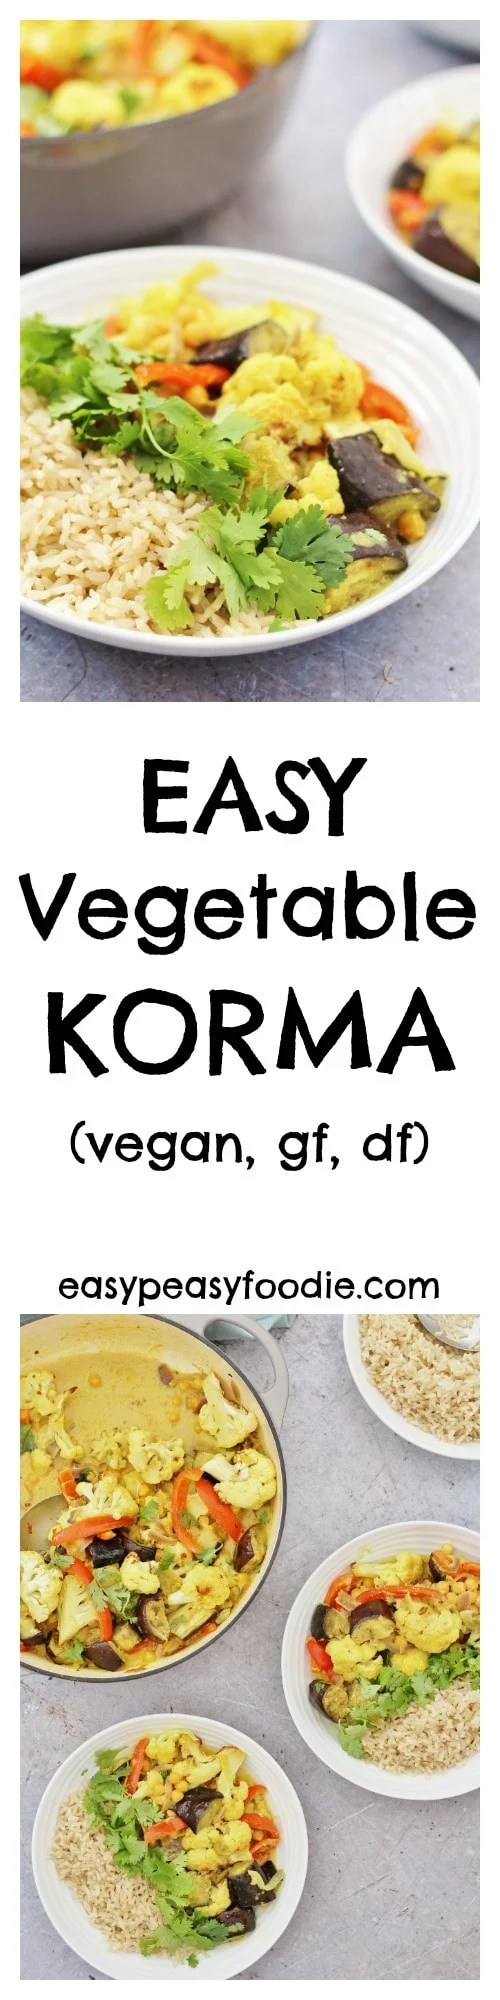 Simple, healthy and utterly delicious this Easy Vegetable Korma can be on your table in just 30 minutes, making it a perfect midweek meal! #korma #vegetablekorma #vegan #vegetarian #vegankorma #healthykorma #onepot #under30minutes #dairyfree #glutenfree